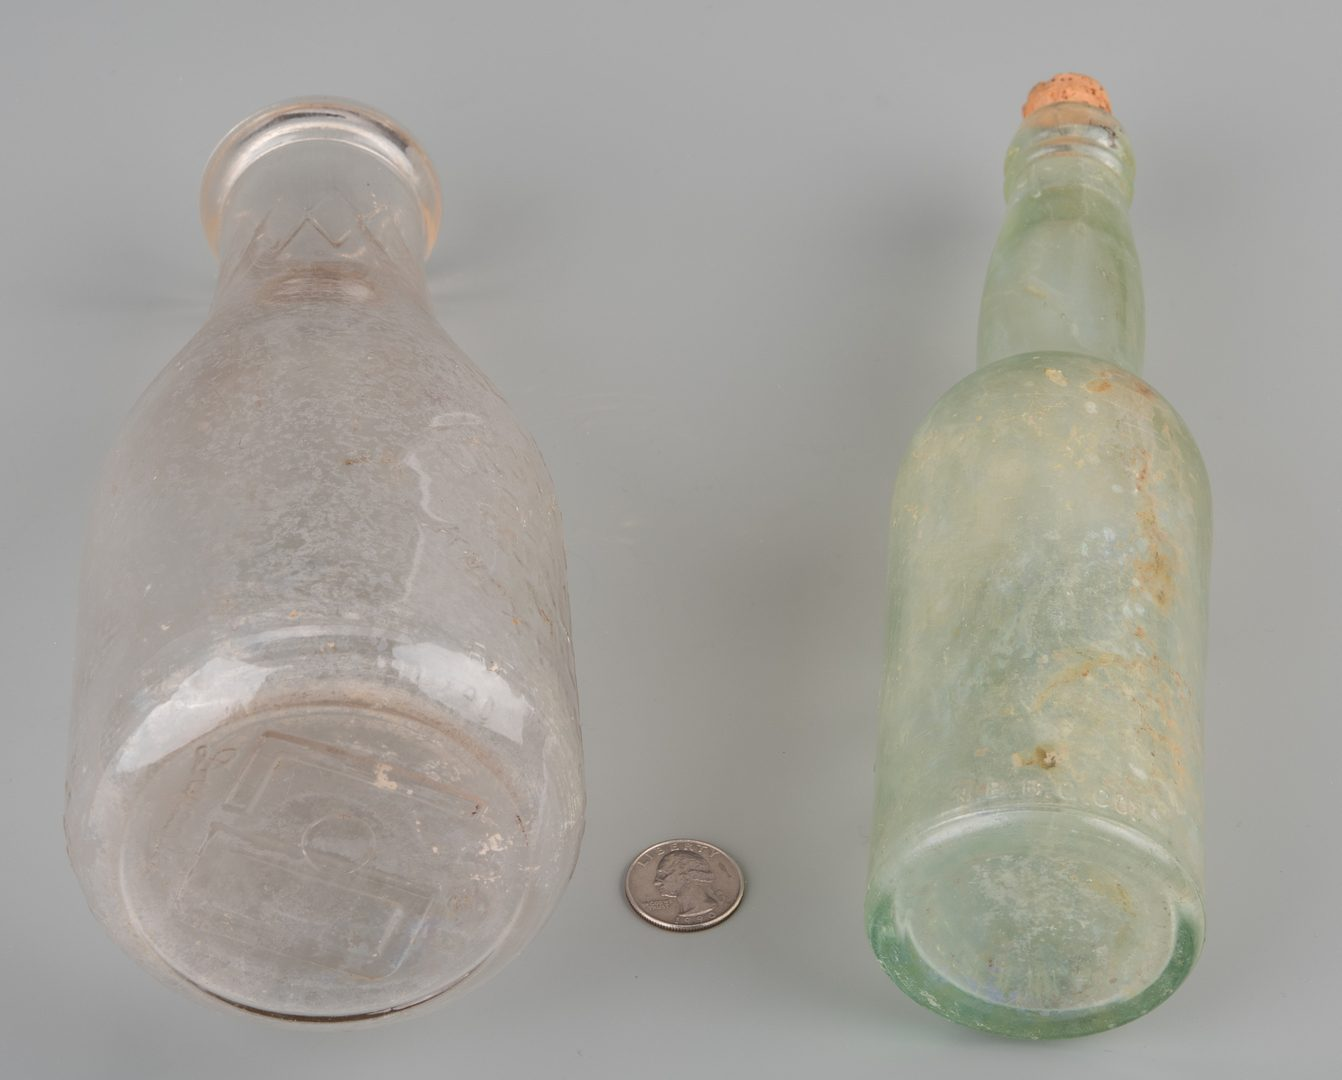 Lot 848: 2 East TN Bottles, inc. Knoxville Brewing Company and Livona Dairy